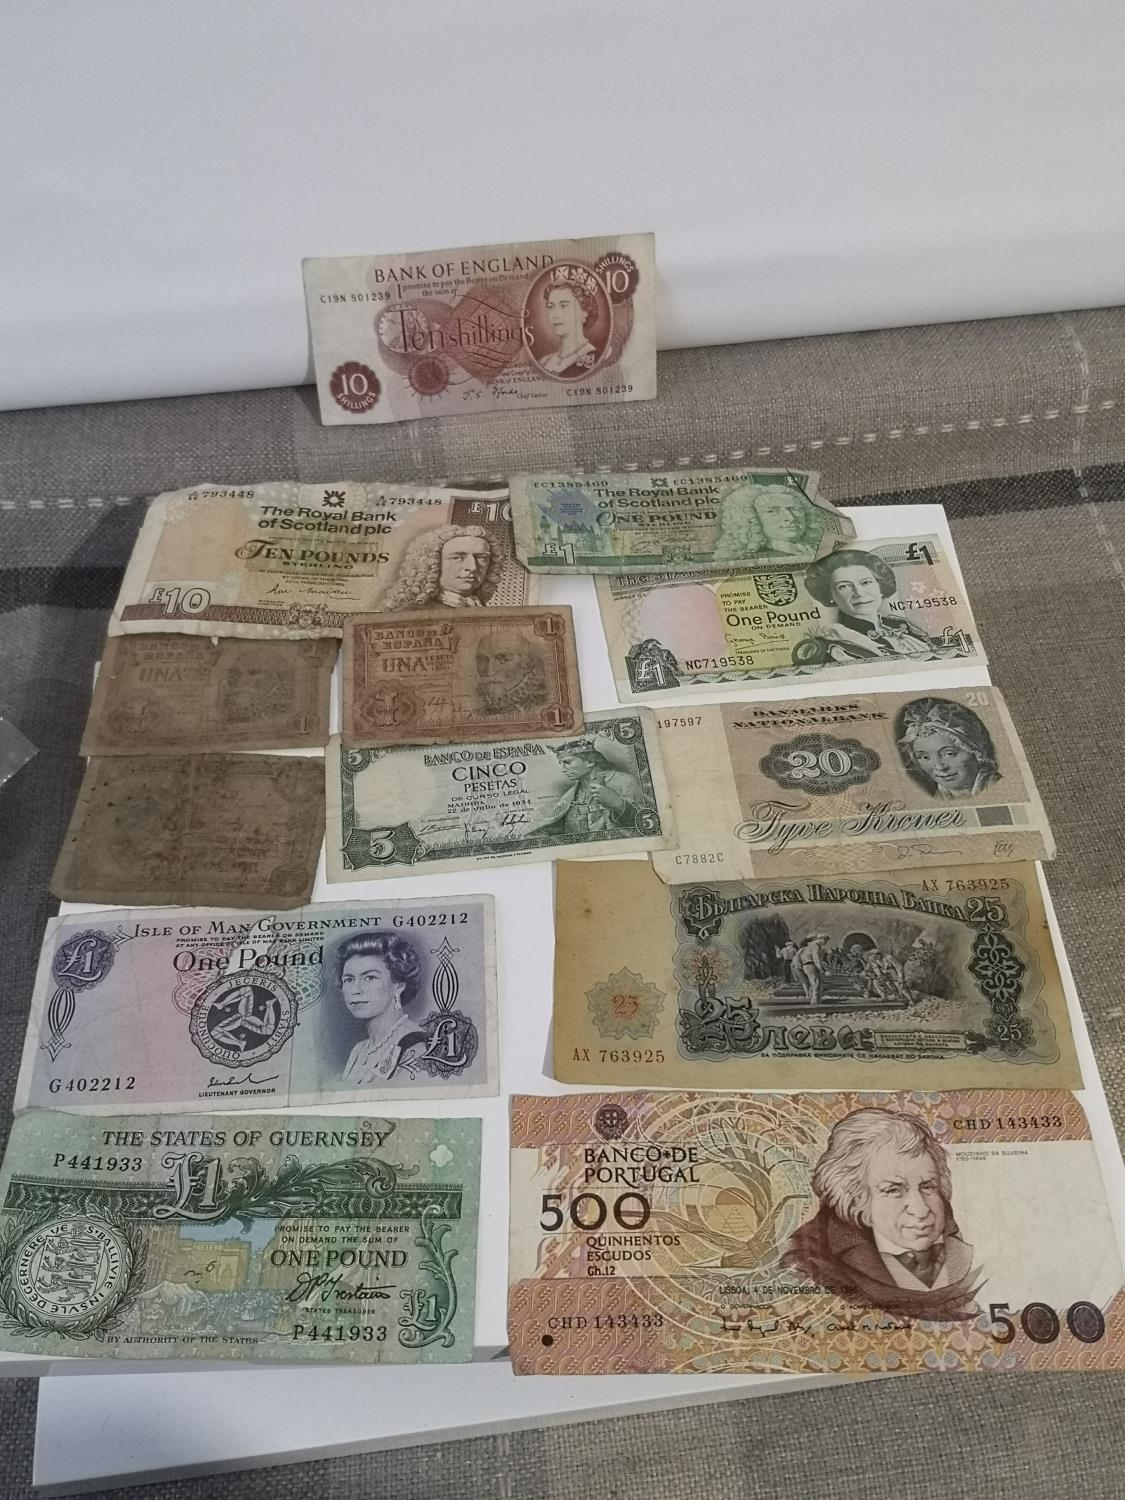 A COLLECTION OF MIXED WORLD BANK NOTES TO INCLUDE BANK OF ENGLAND 10 SHILLINGS, SPANISH BANK